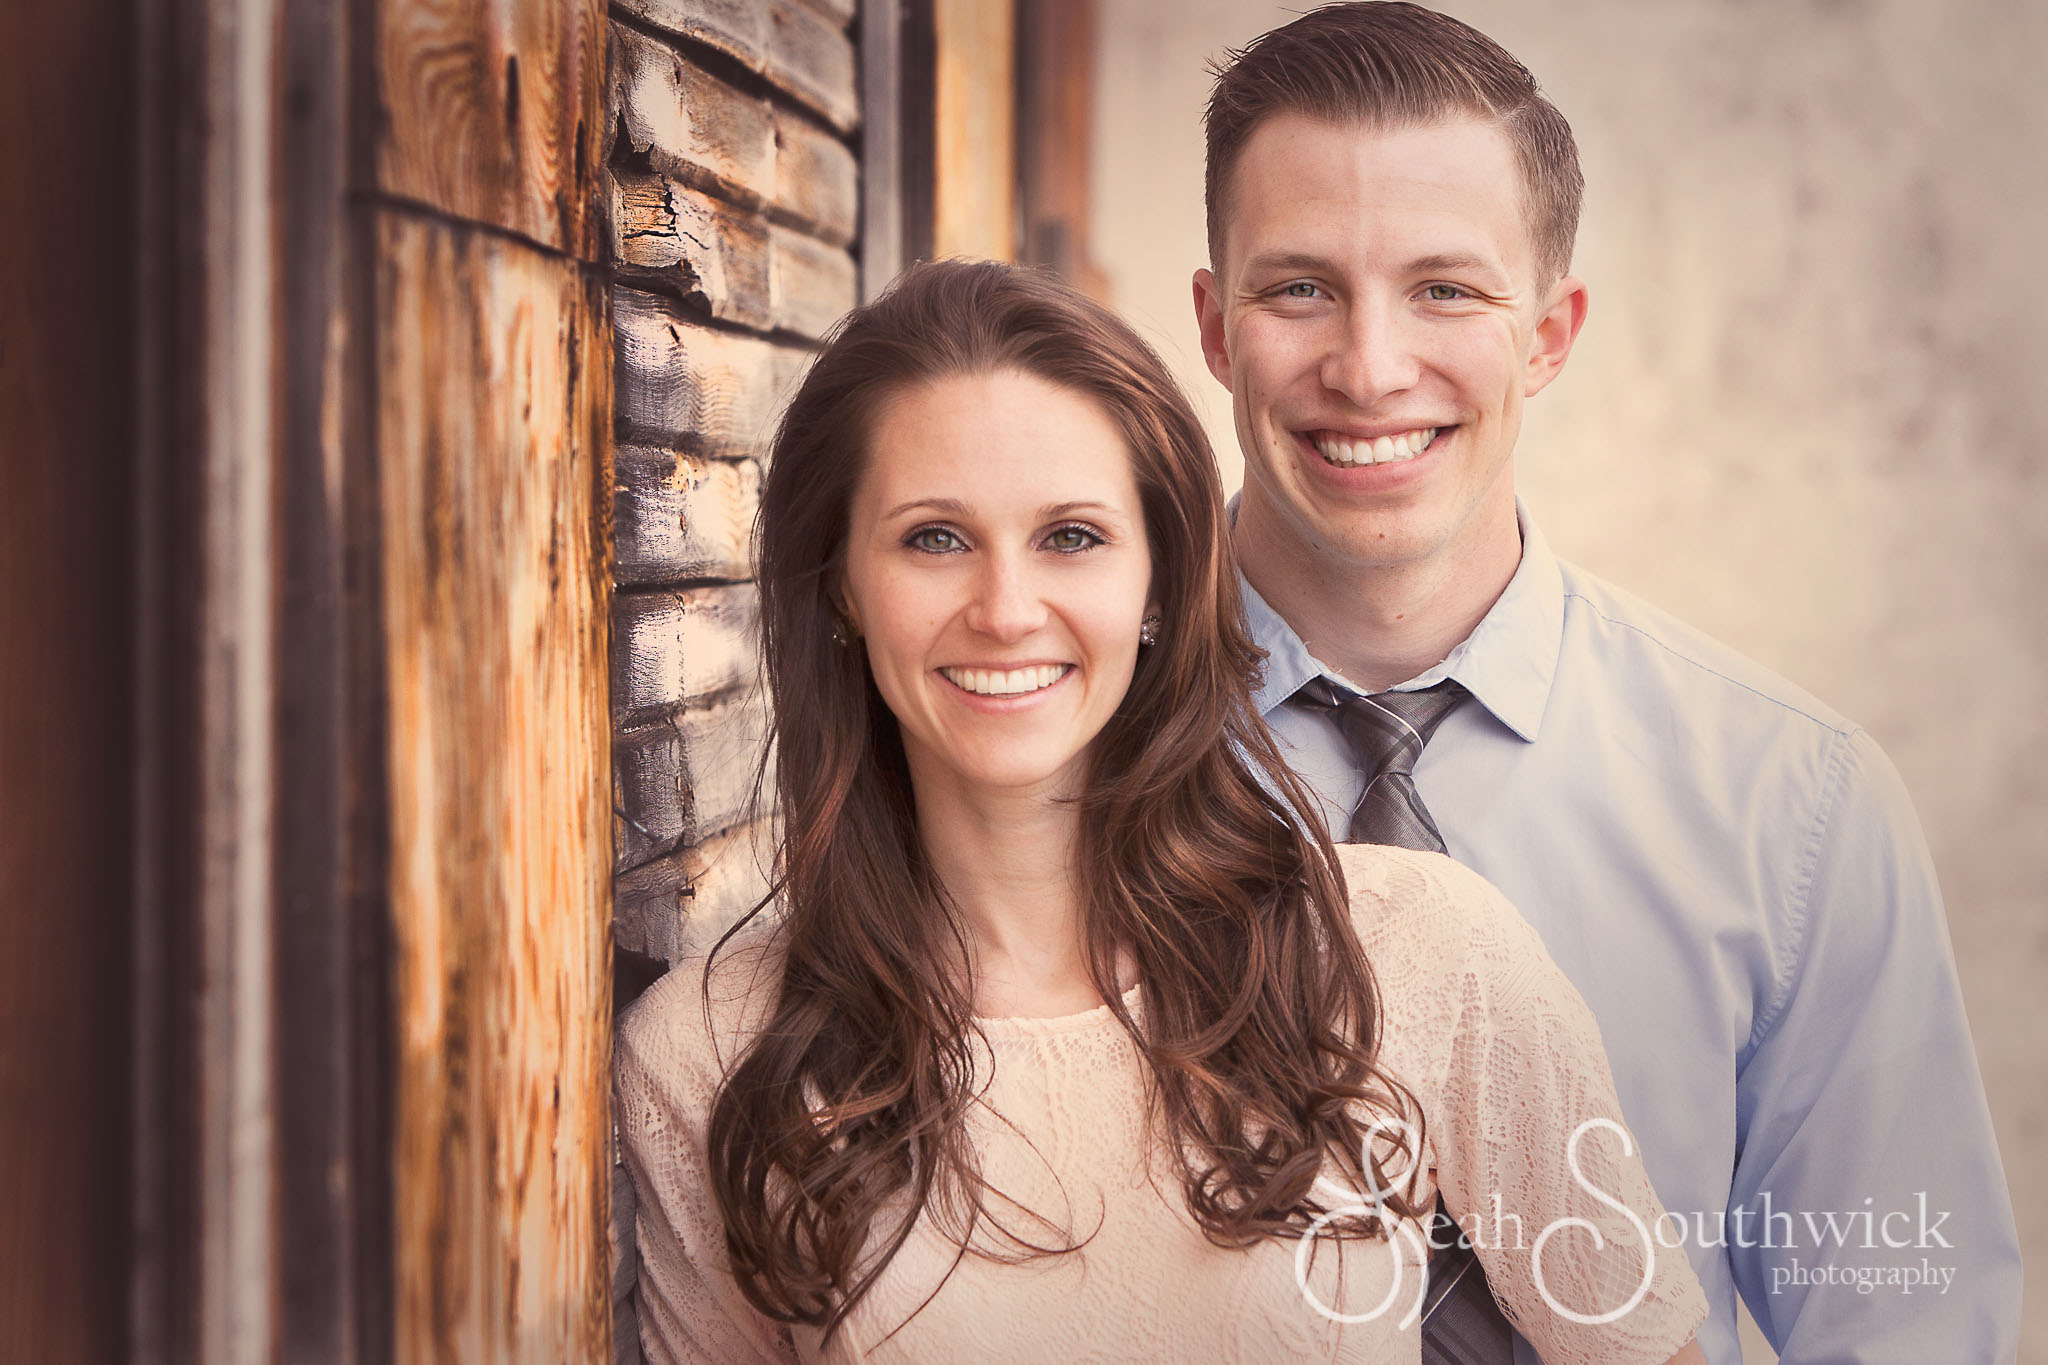 Engagement Photography Leah Southwick Photography.jpg